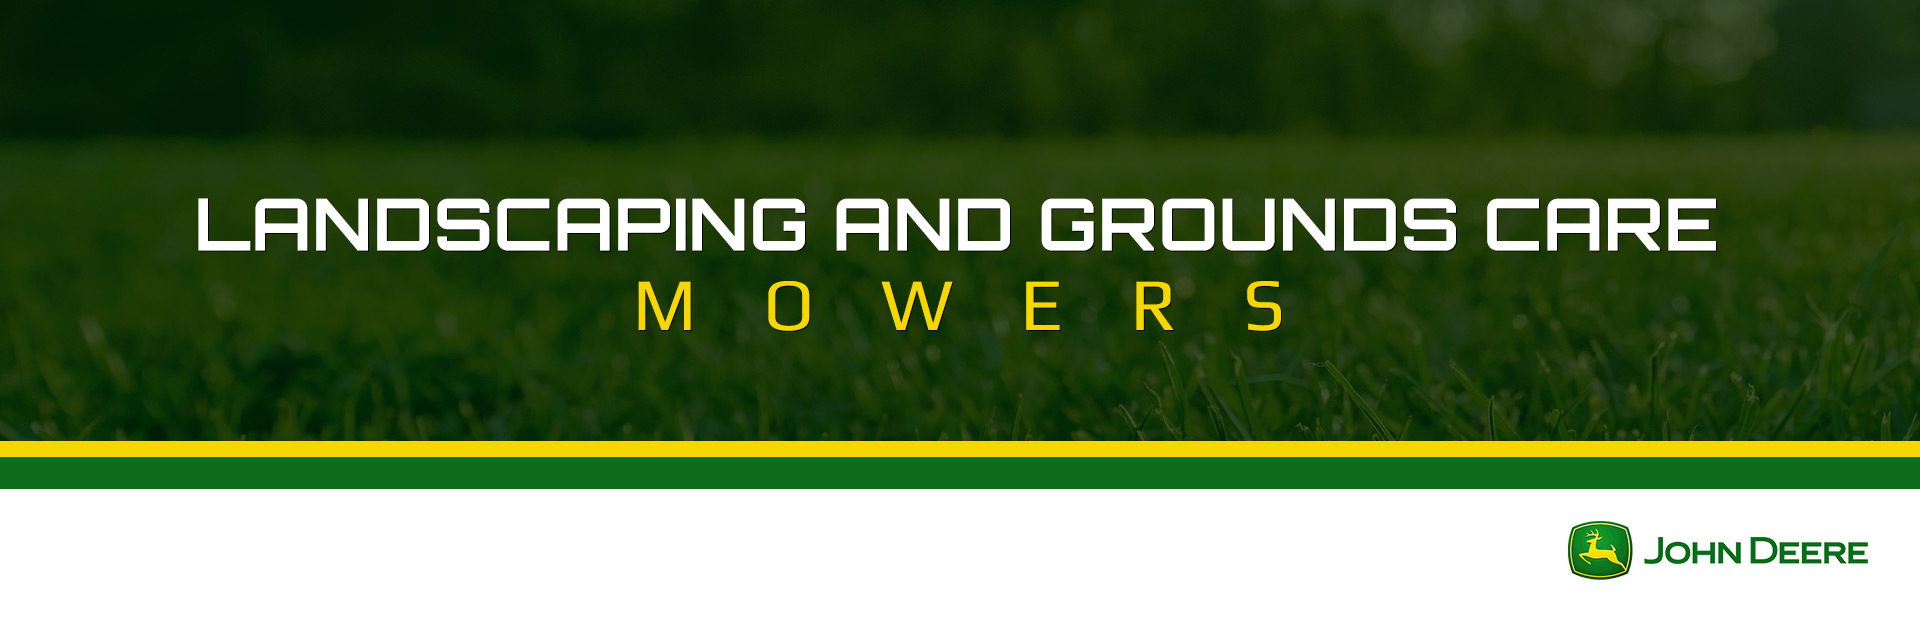 John Deere: Landscaping and Grounds Care Mowers